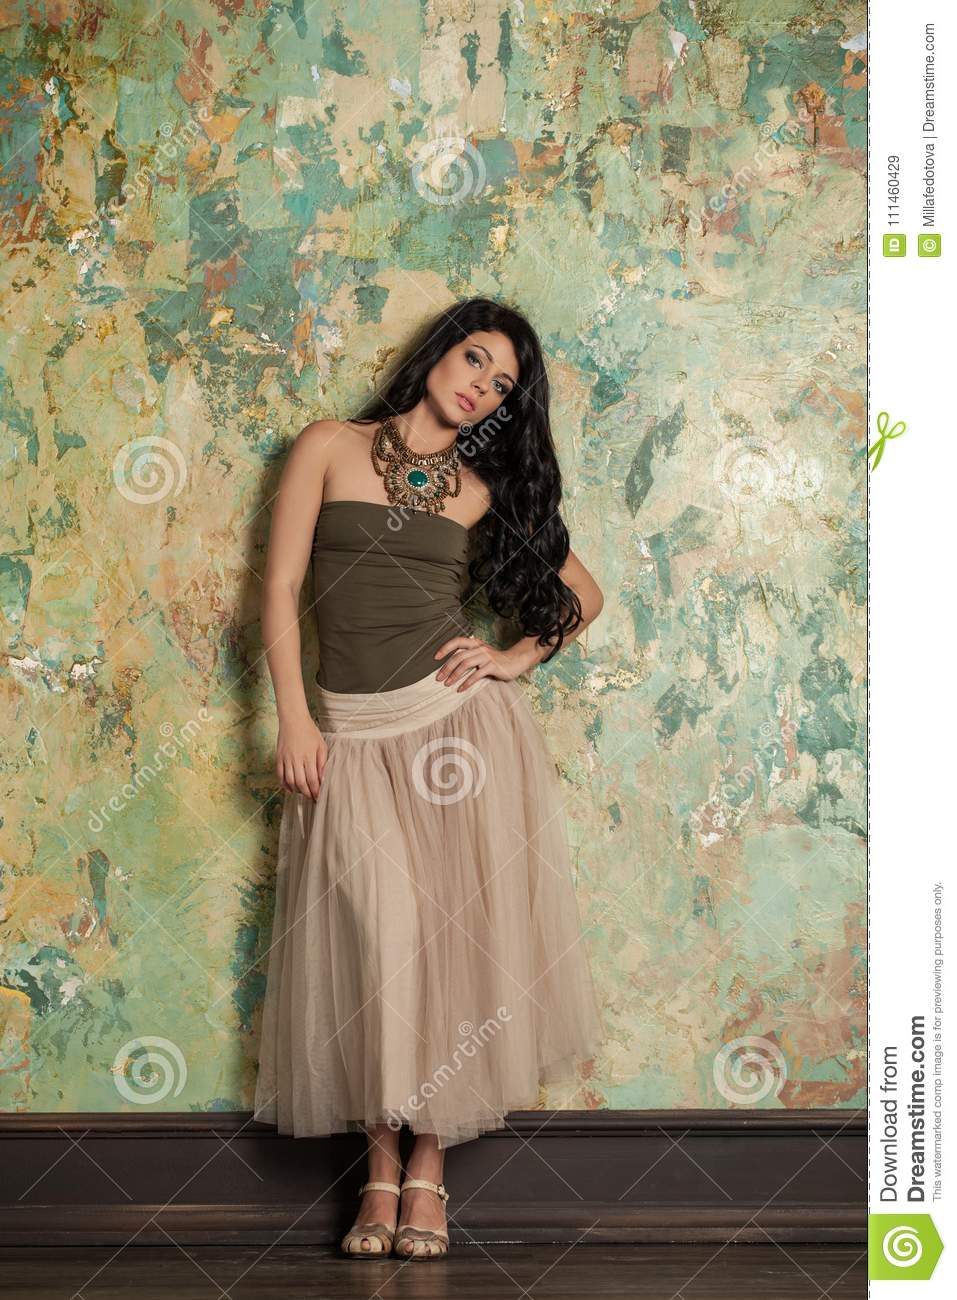 892a0cd28d2 Beautiful Young Brunette Woman in Nice Clothes and High Heels Sandals.  Fashion Photo